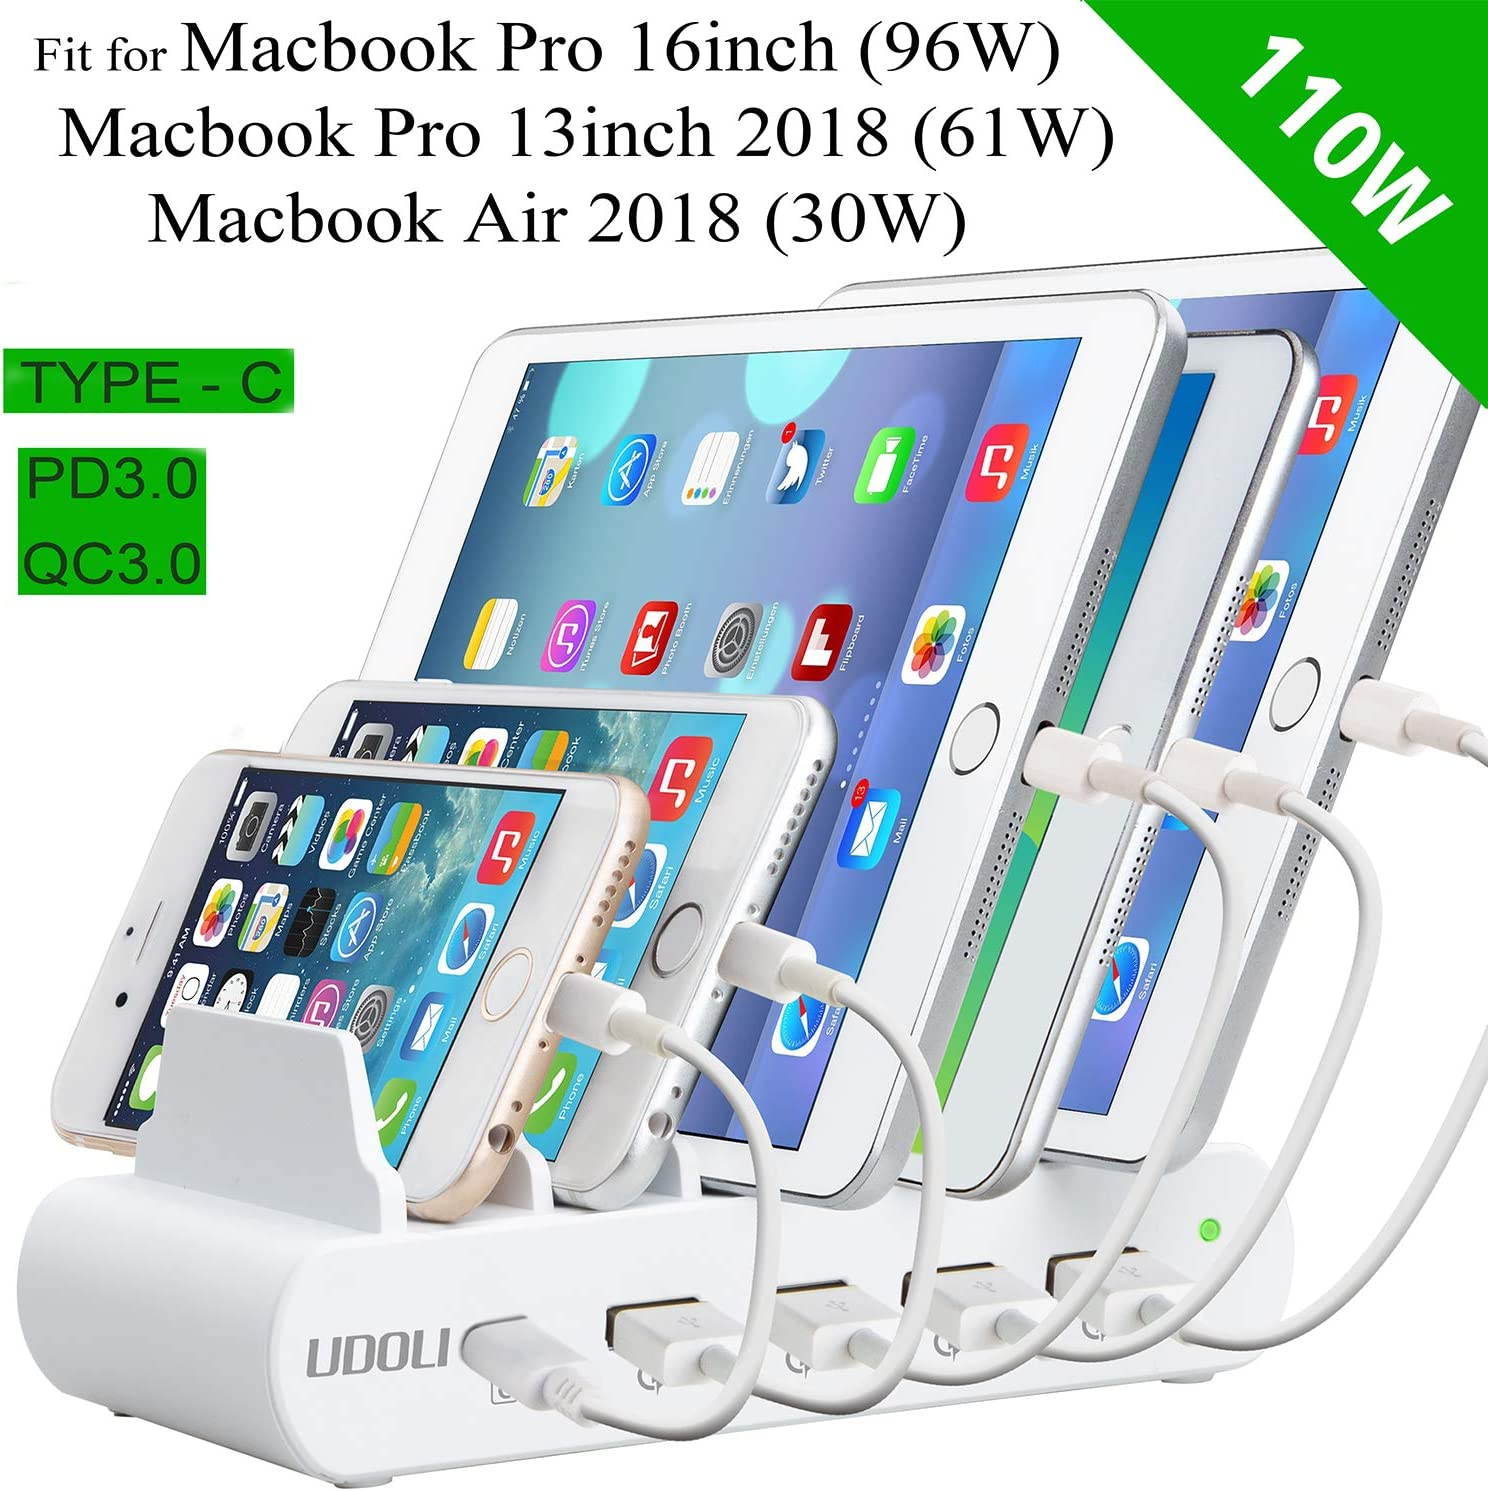 iPad Pro USB PD 3.0 Charging Stand Organizer for USB-C Laptops MacBook Pro//Air iPhone 11//Pro//Max USB Charging Station Dock S10 S9//S8 and More 4-Port Fast Charging Station Desktop Charger